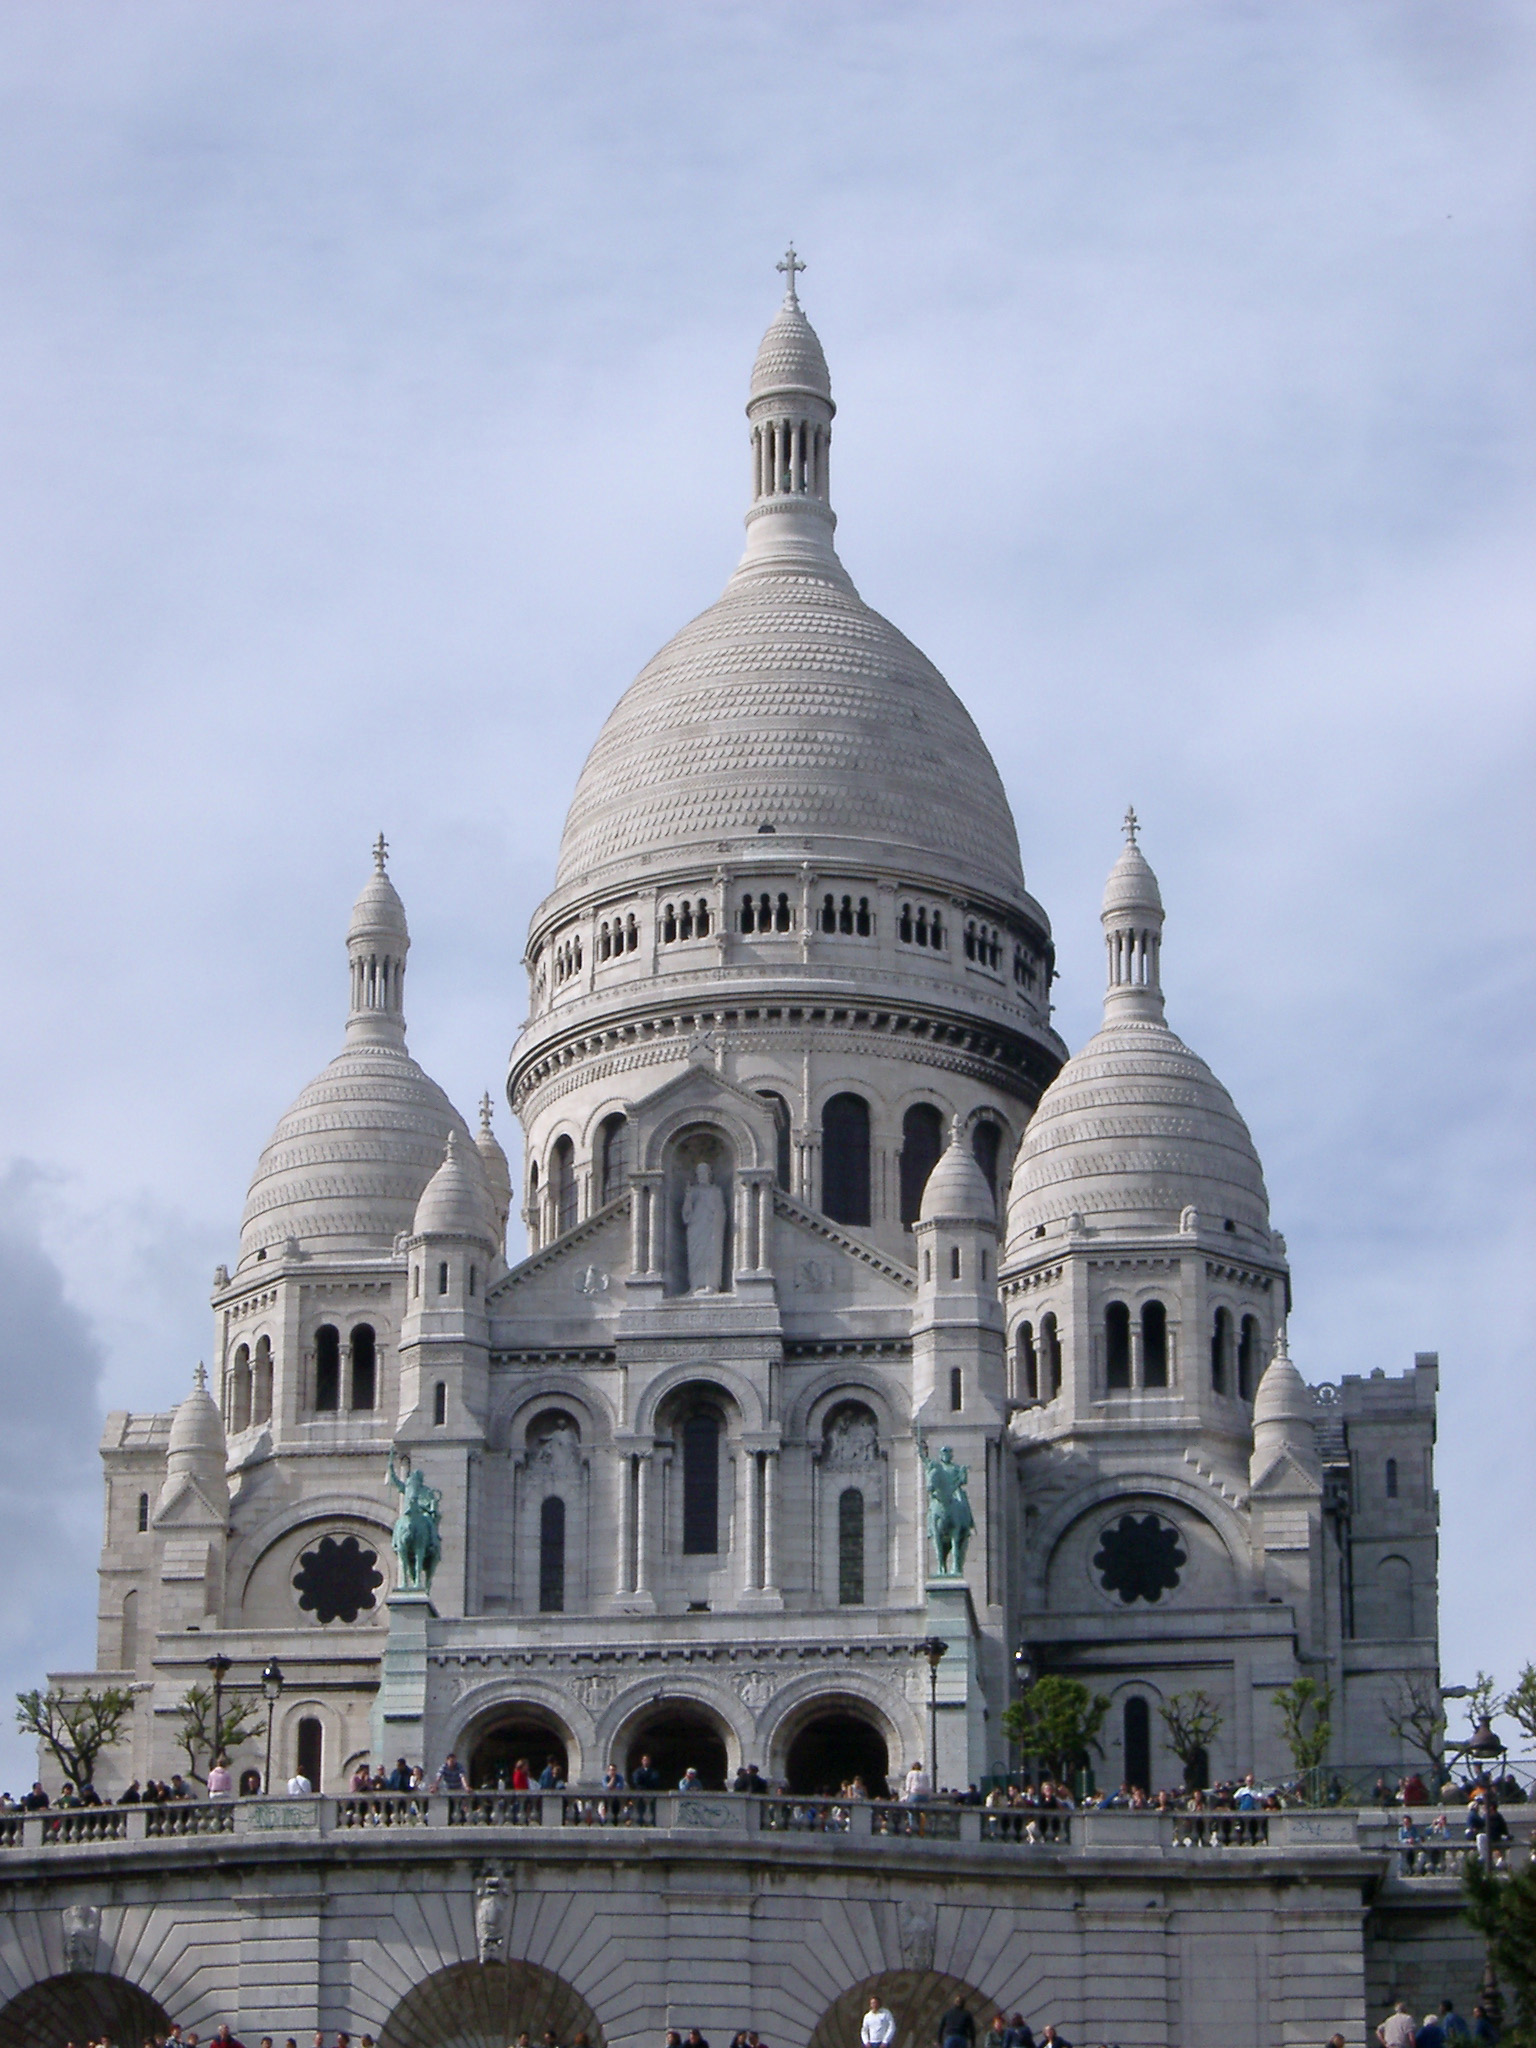 View of the Basilica du Sacre-Couer, or Sacred Heart, an iconic landmark in Paris on the Montmarte dedicated to the heart of Jesus